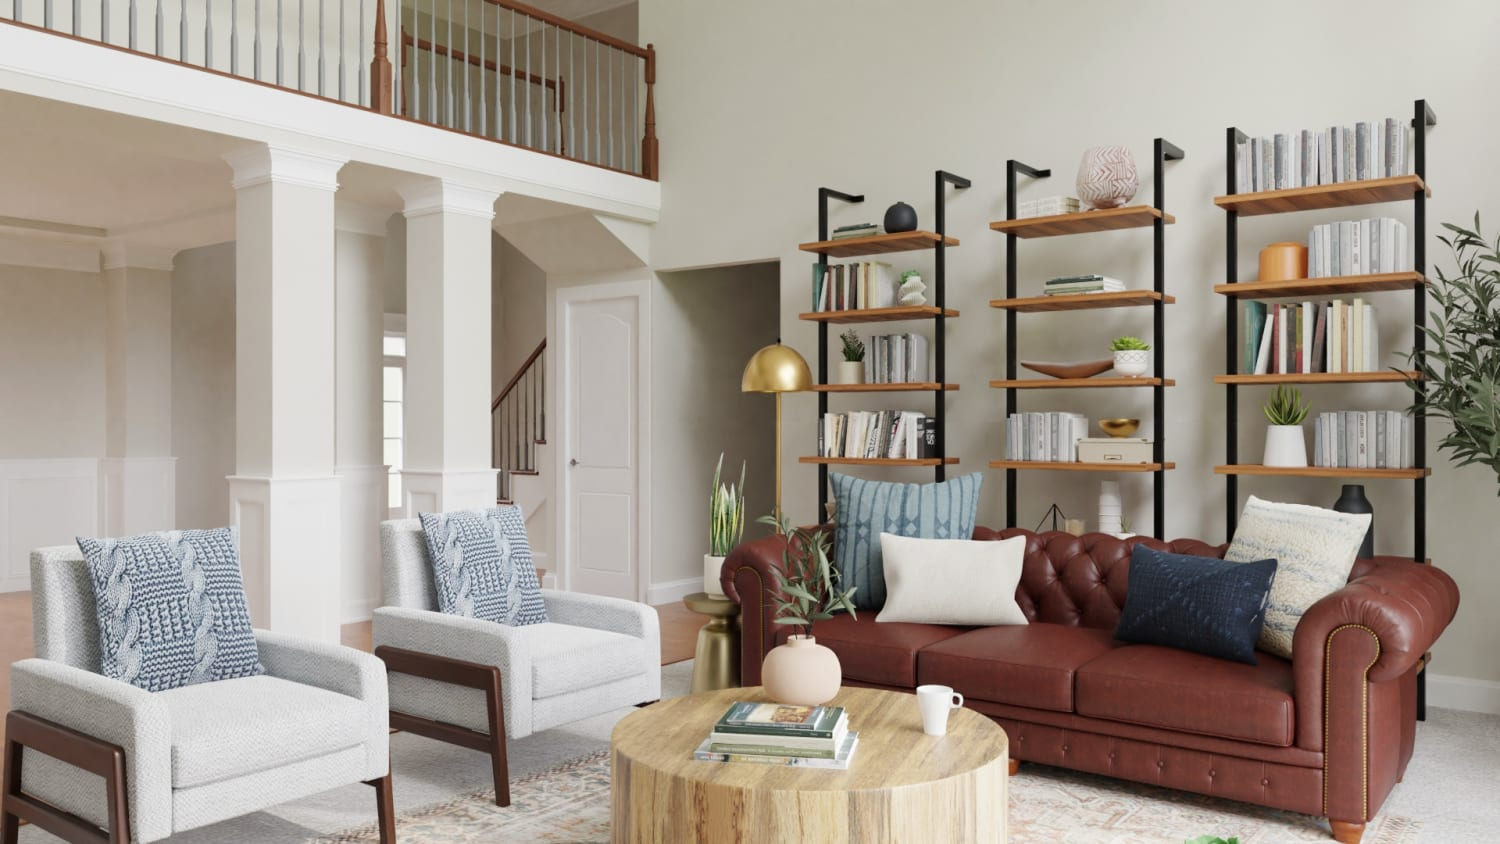 Statement Bookshelves:  Rustic Transitional Living Room Design By Spacejoy